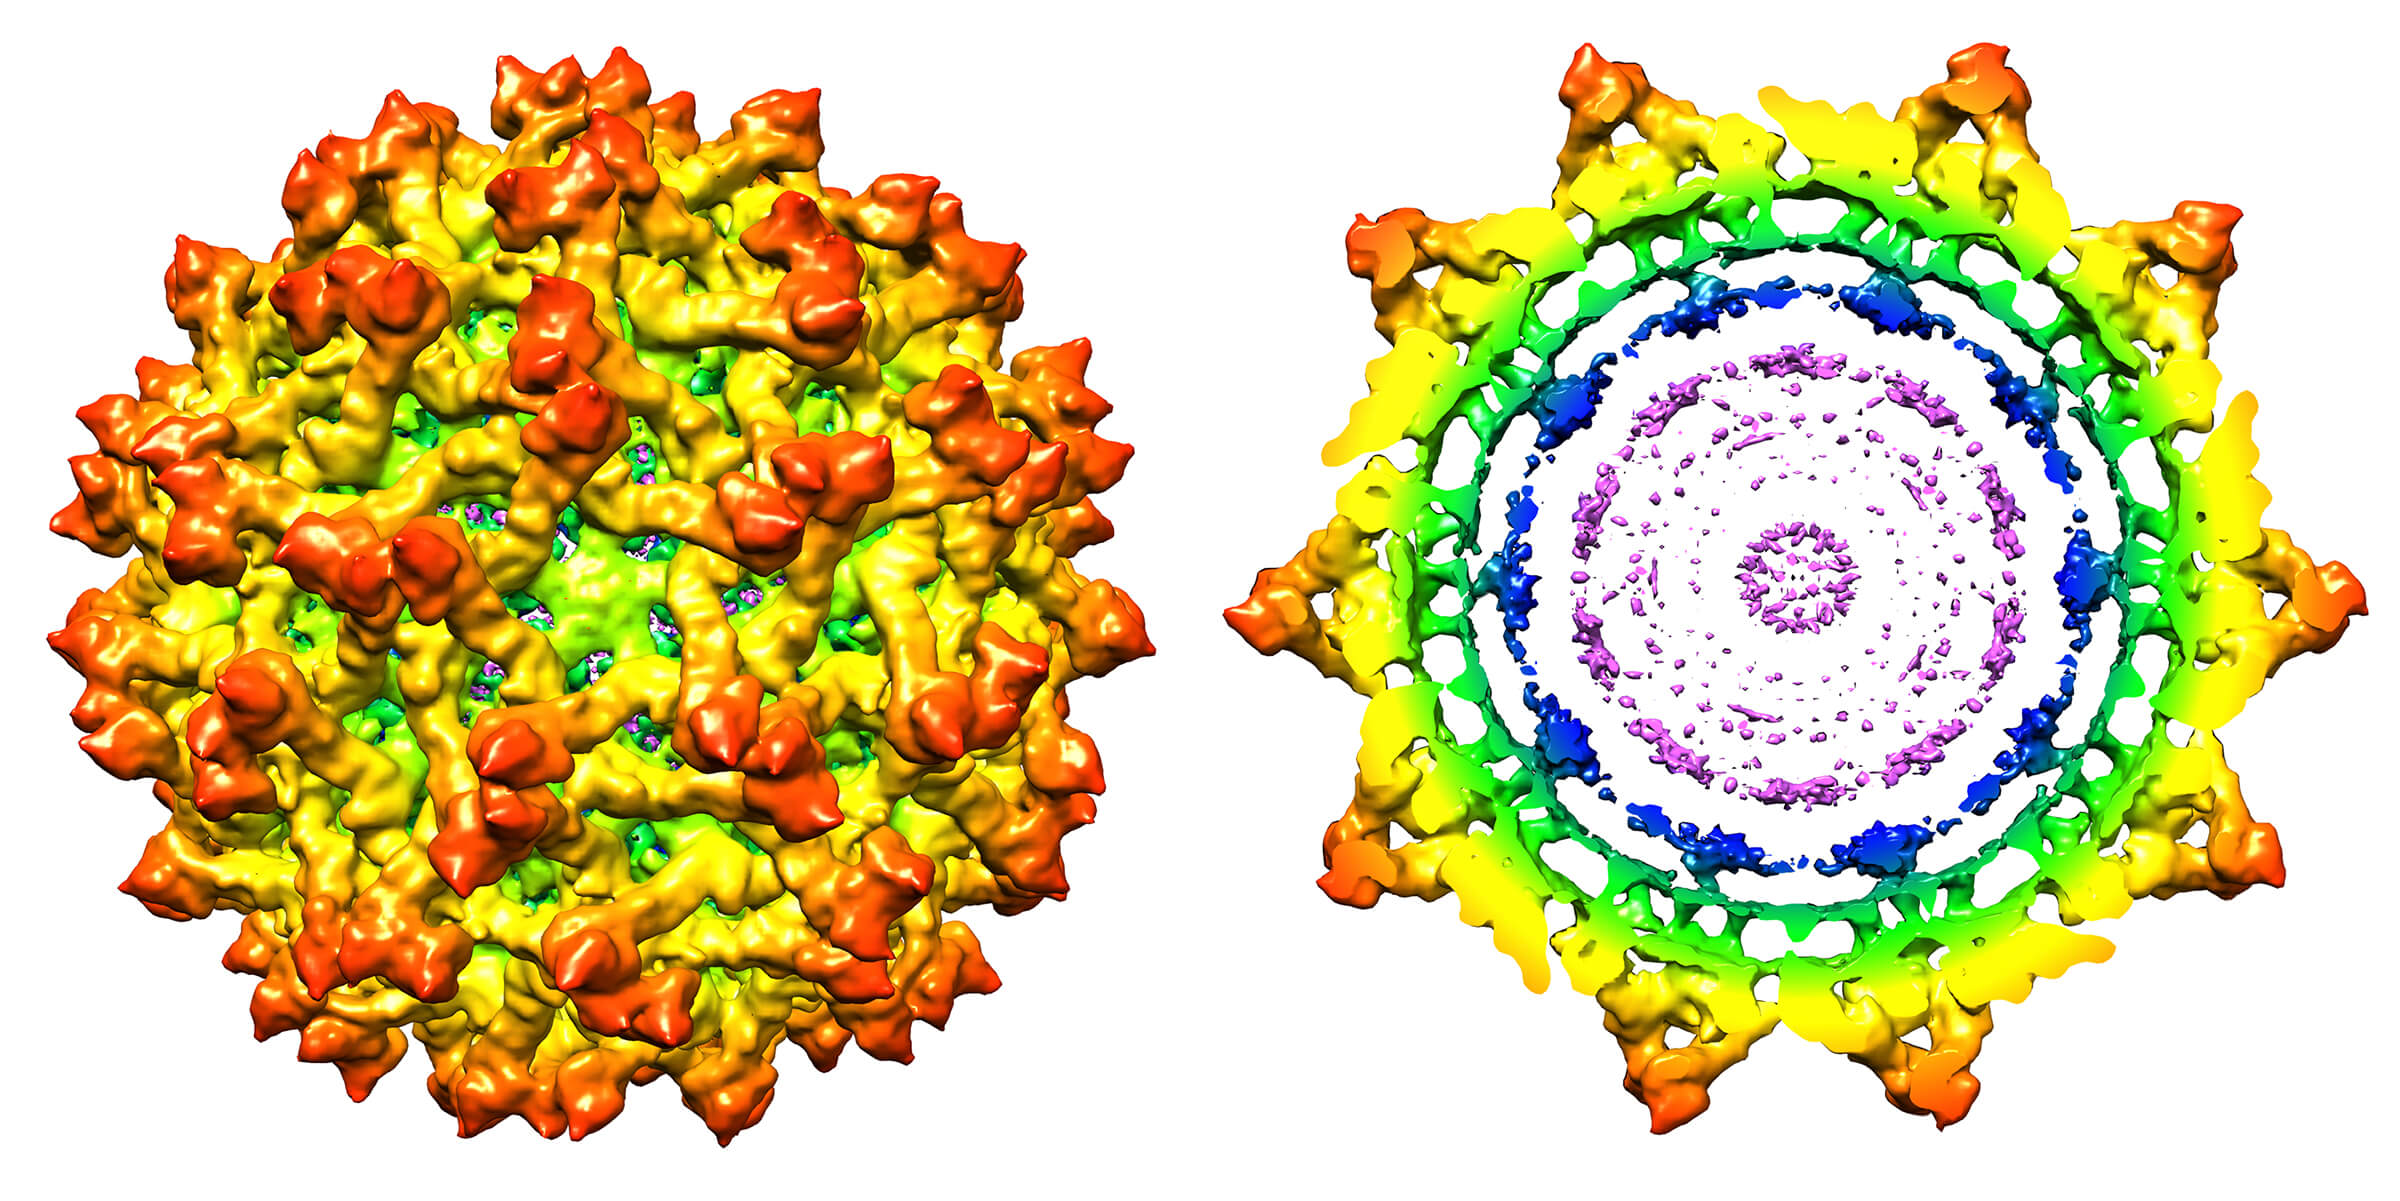 High-resolution structure of the immature Zika virus